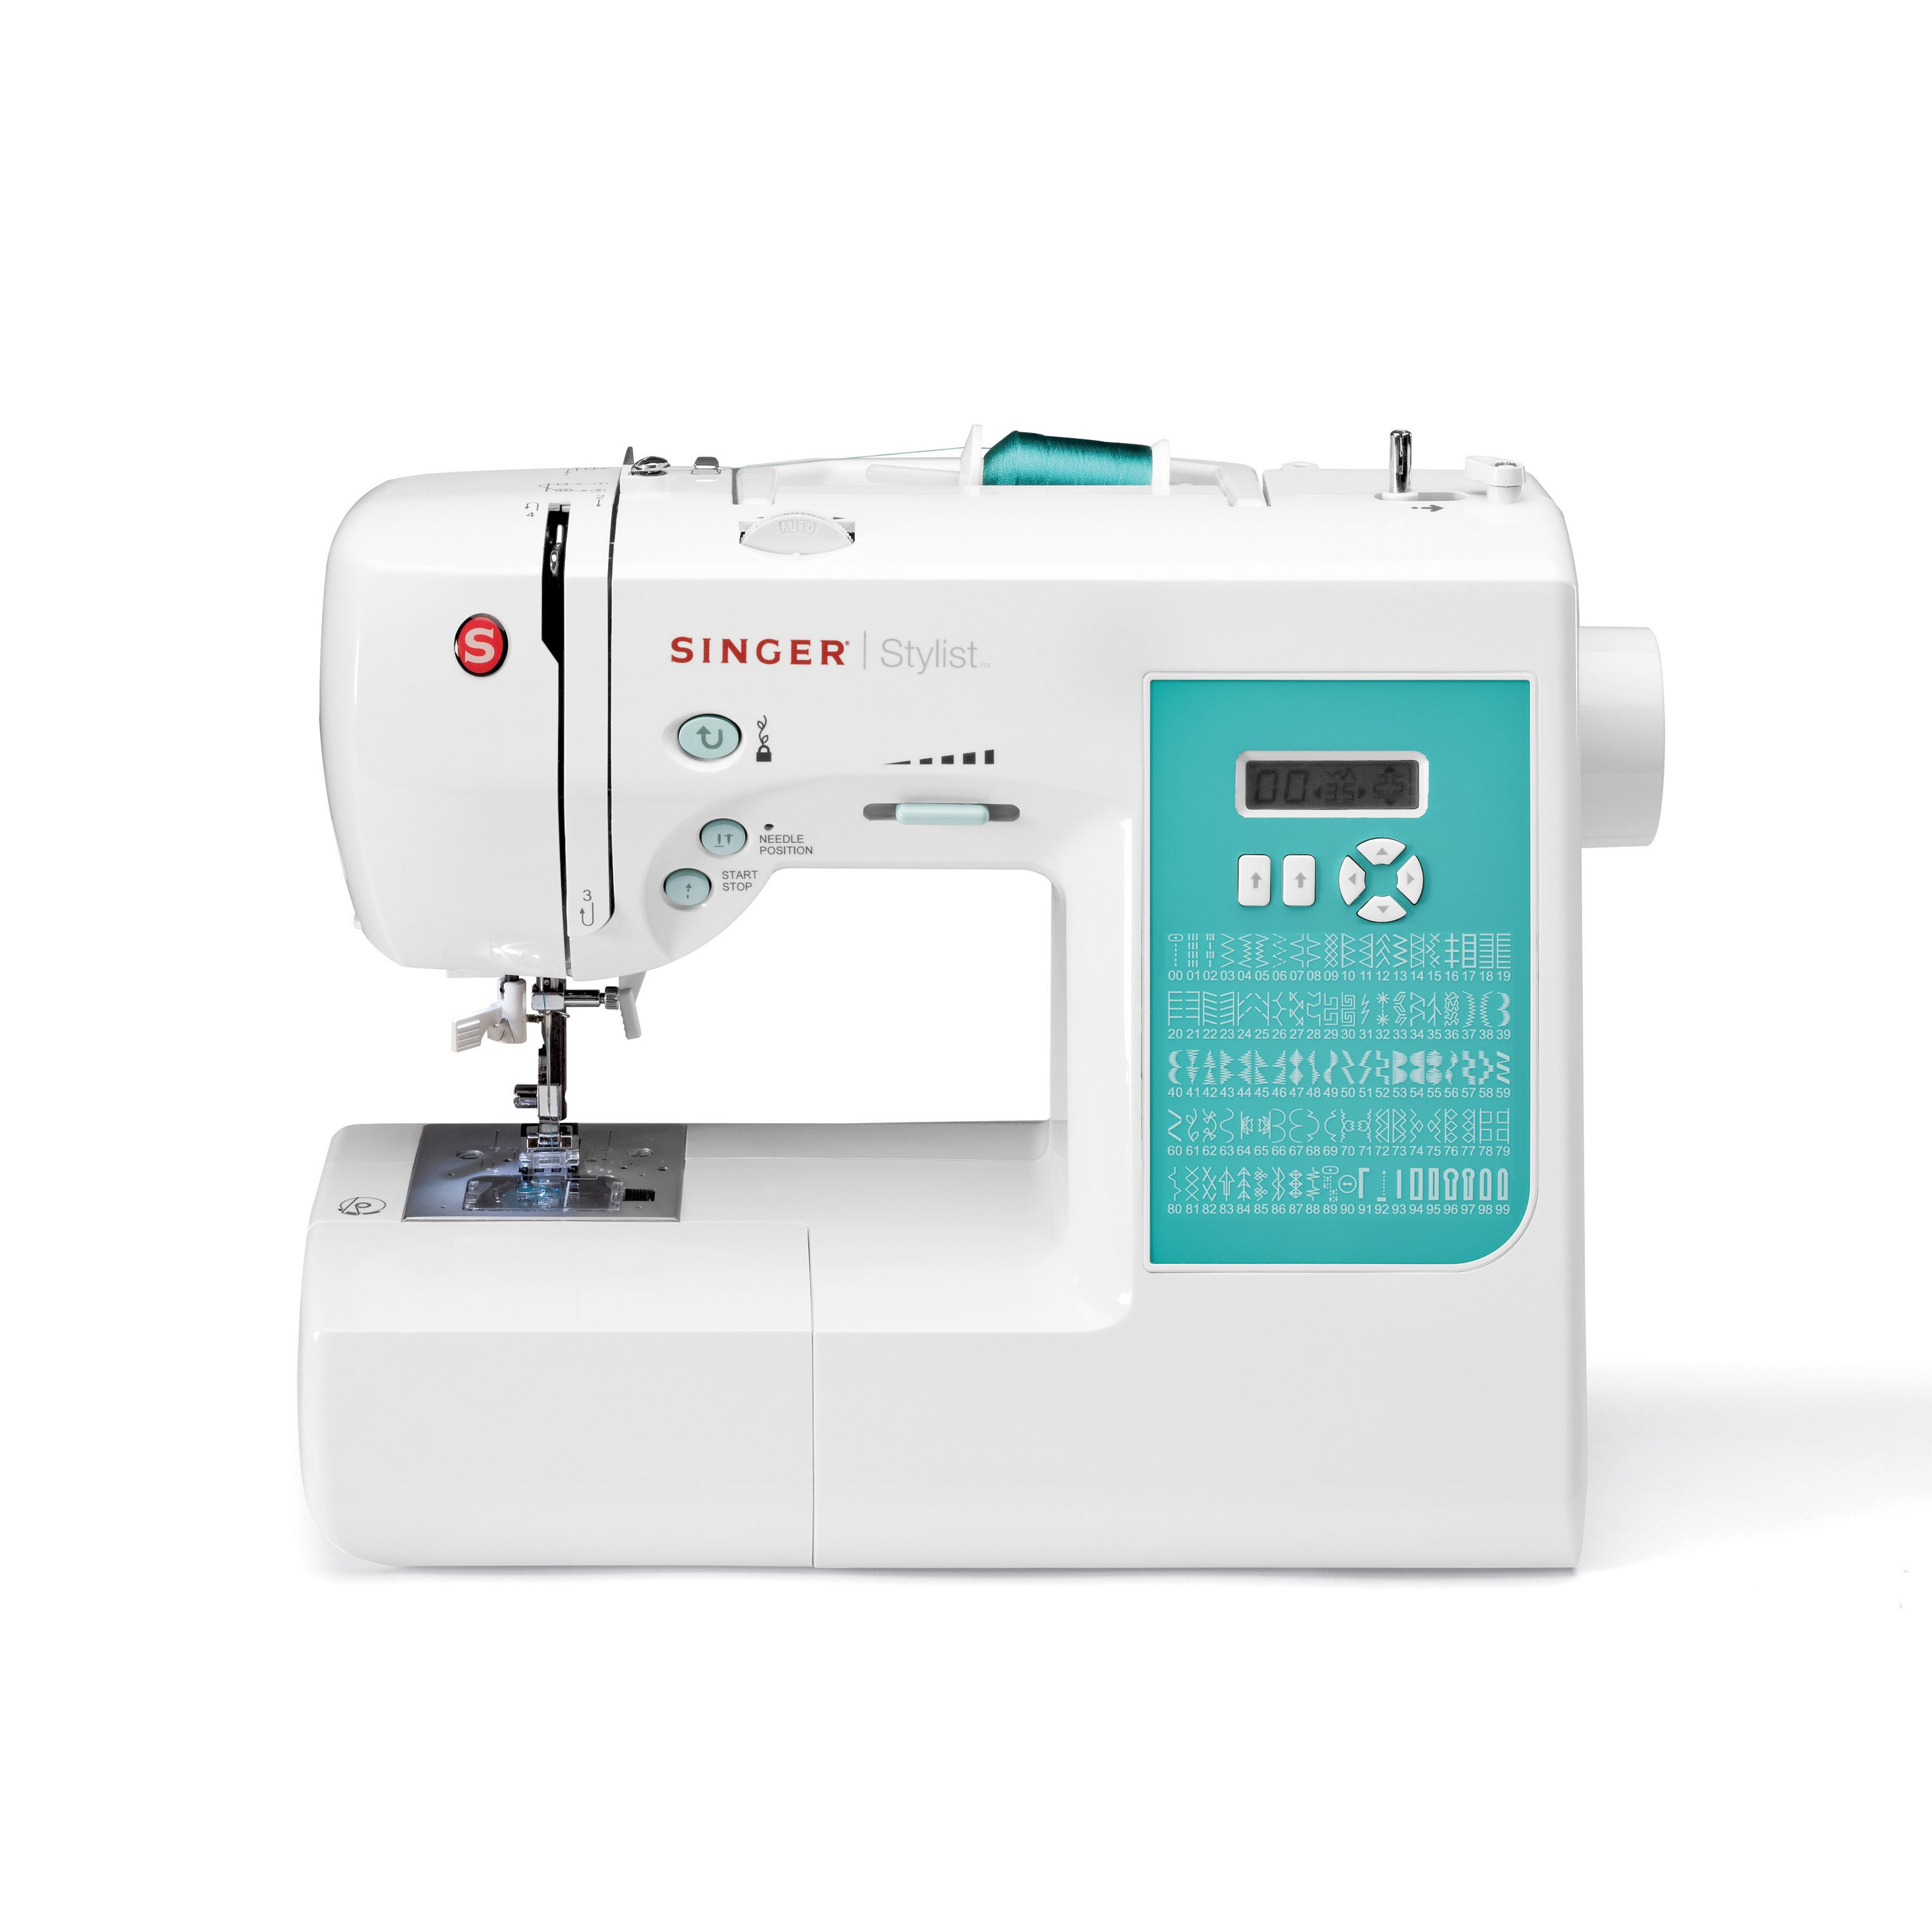 SINGER SEWING CO. 7258 Stylist Electronic Sewing Machine,...